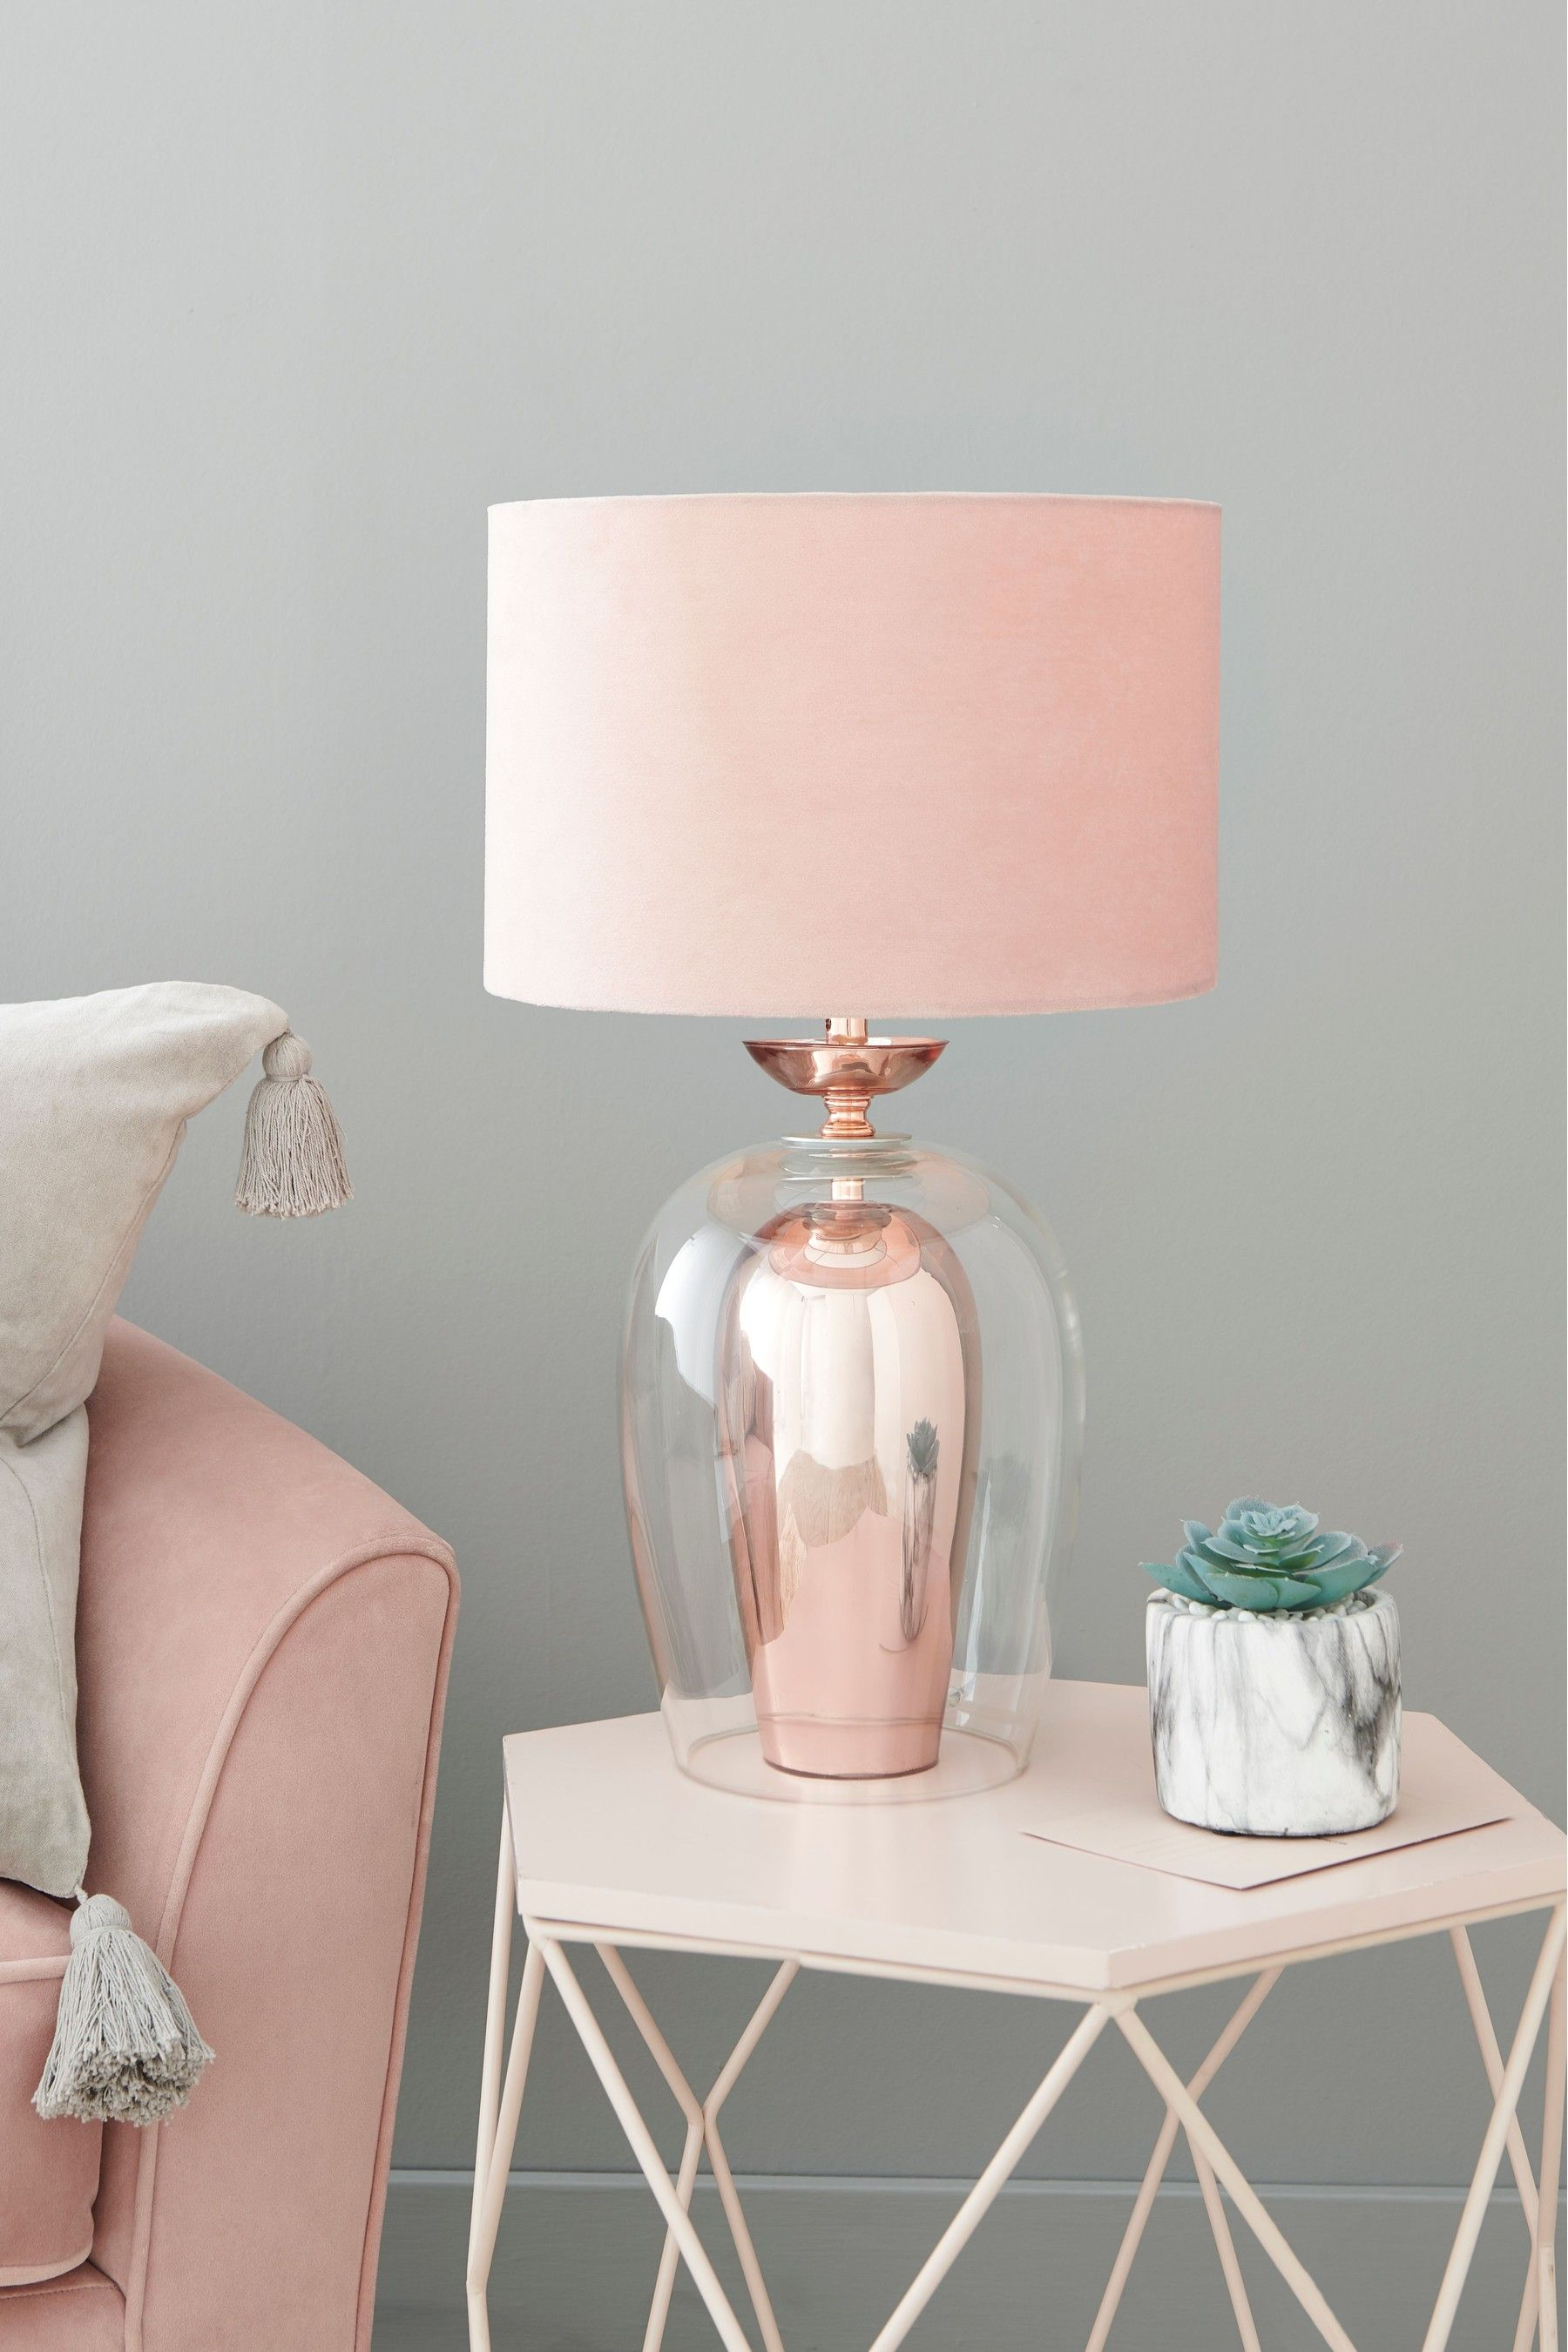 Wonderbaar Rosella Table Lamp in 2020 (With images) | Table lamps for bedroom WZ-78